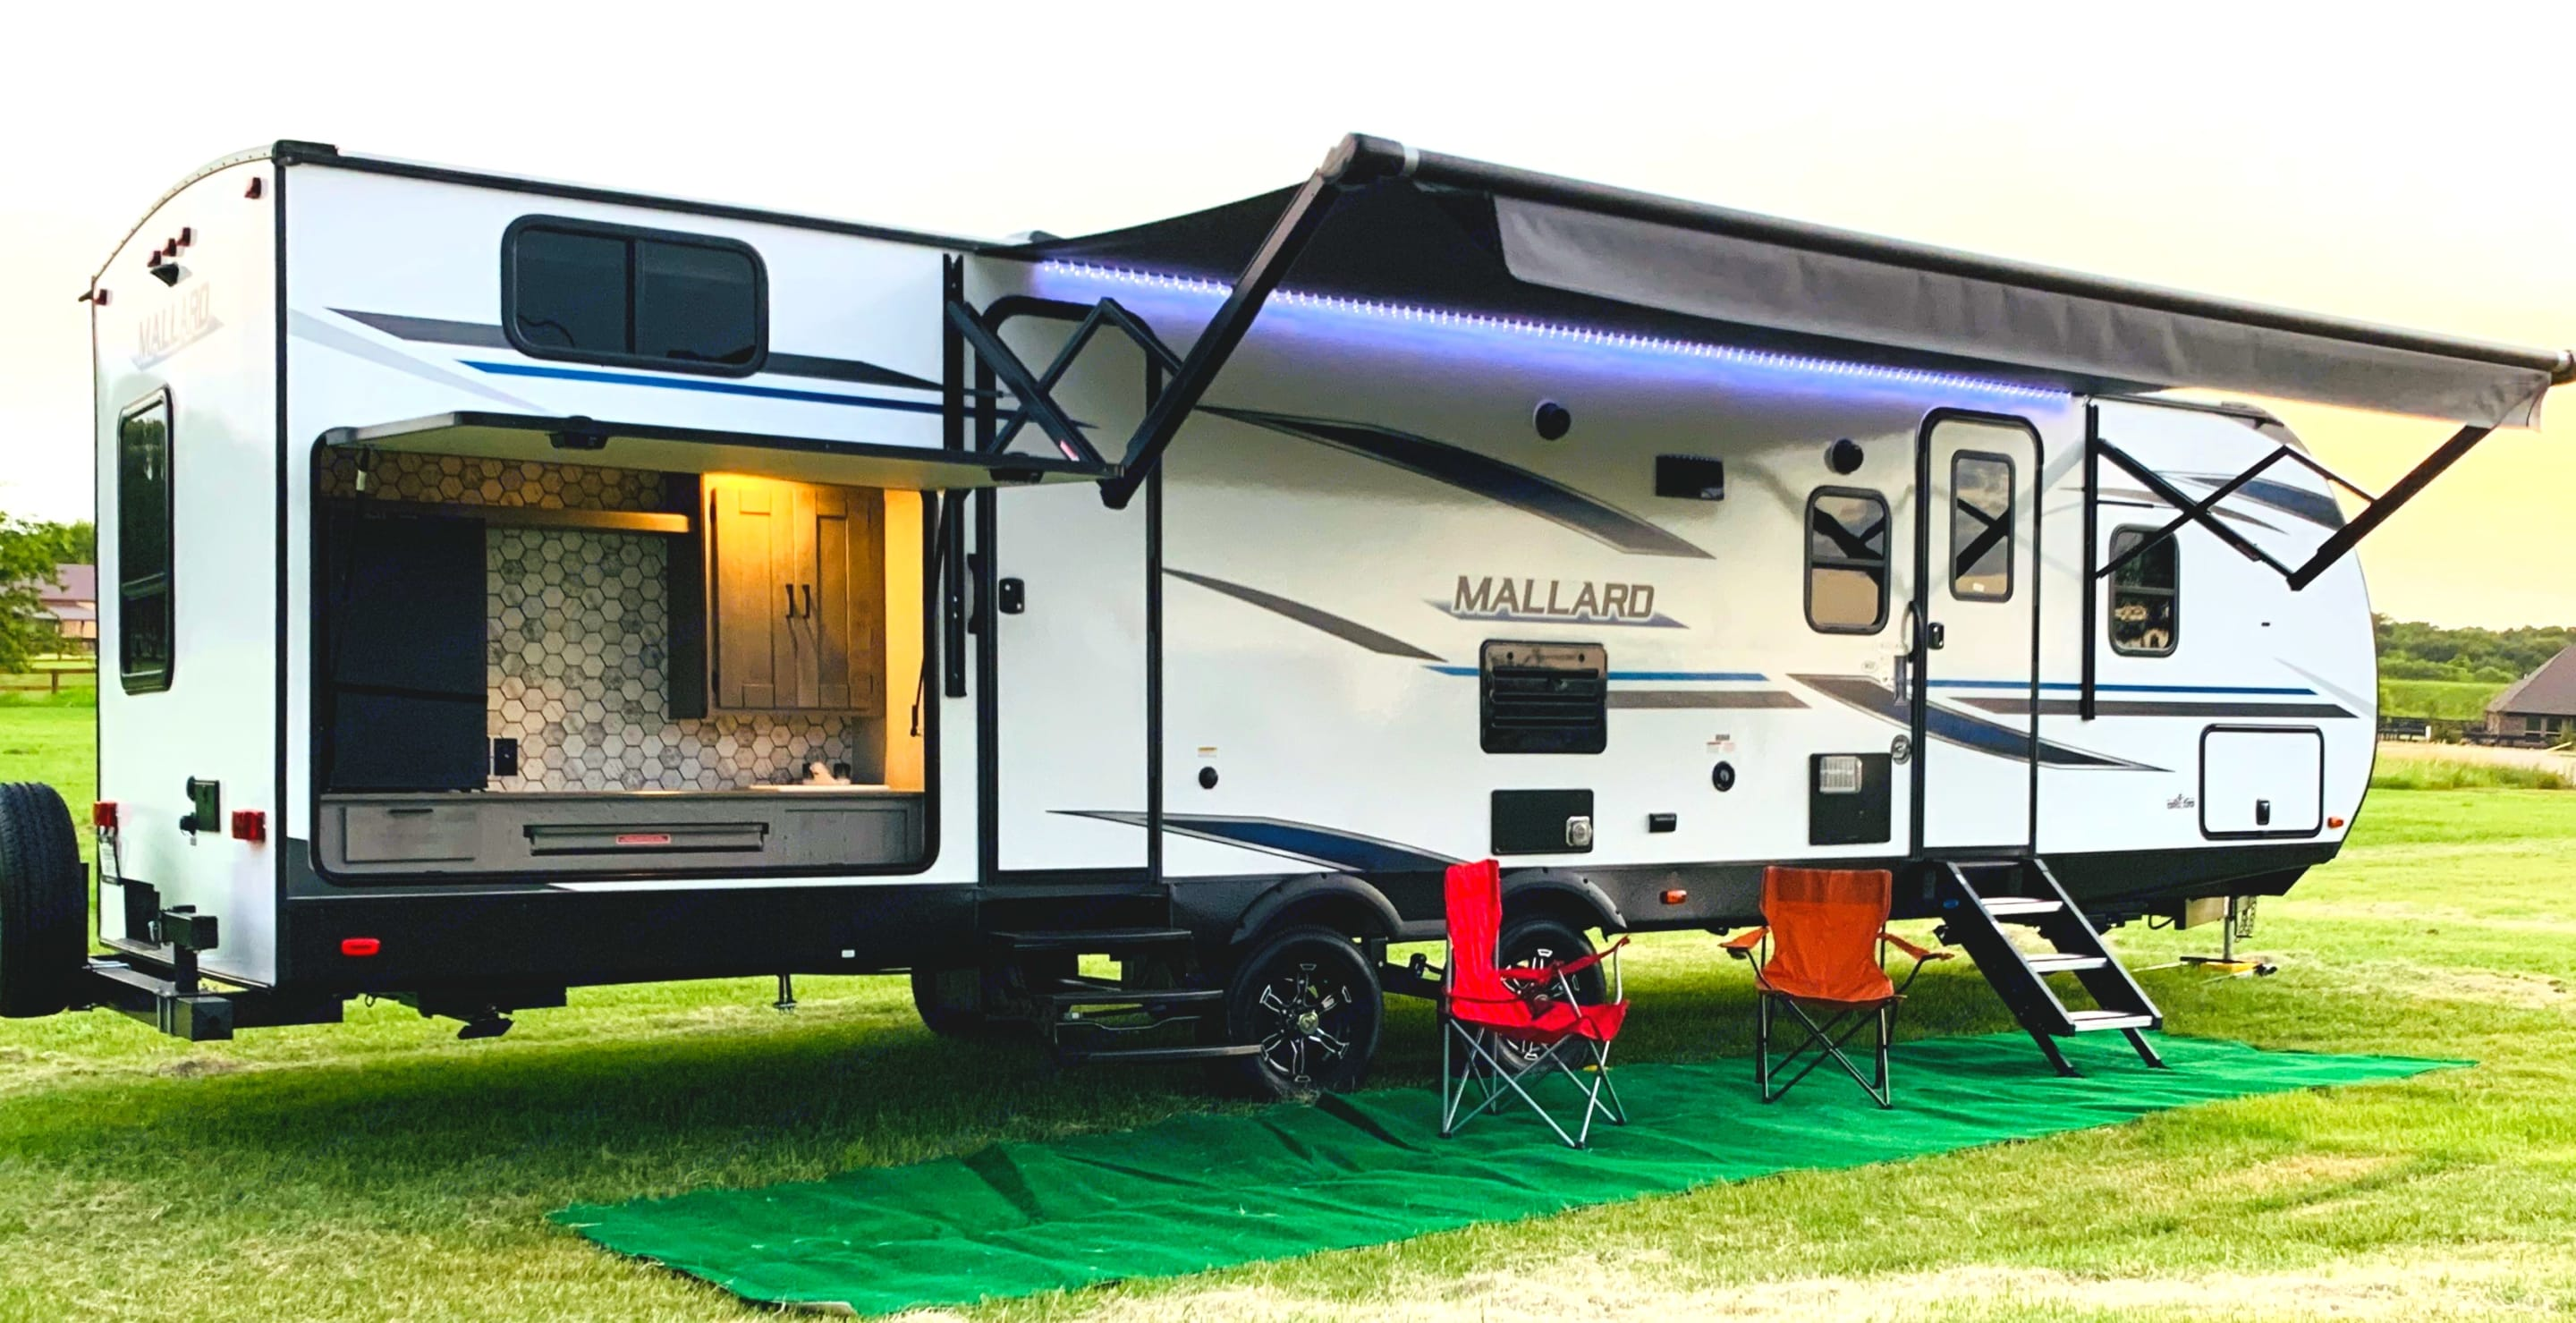 Exterior view with outdoor kitchen (Propane grill included) along with fridge and storage. Heartland Mallard M33 2021